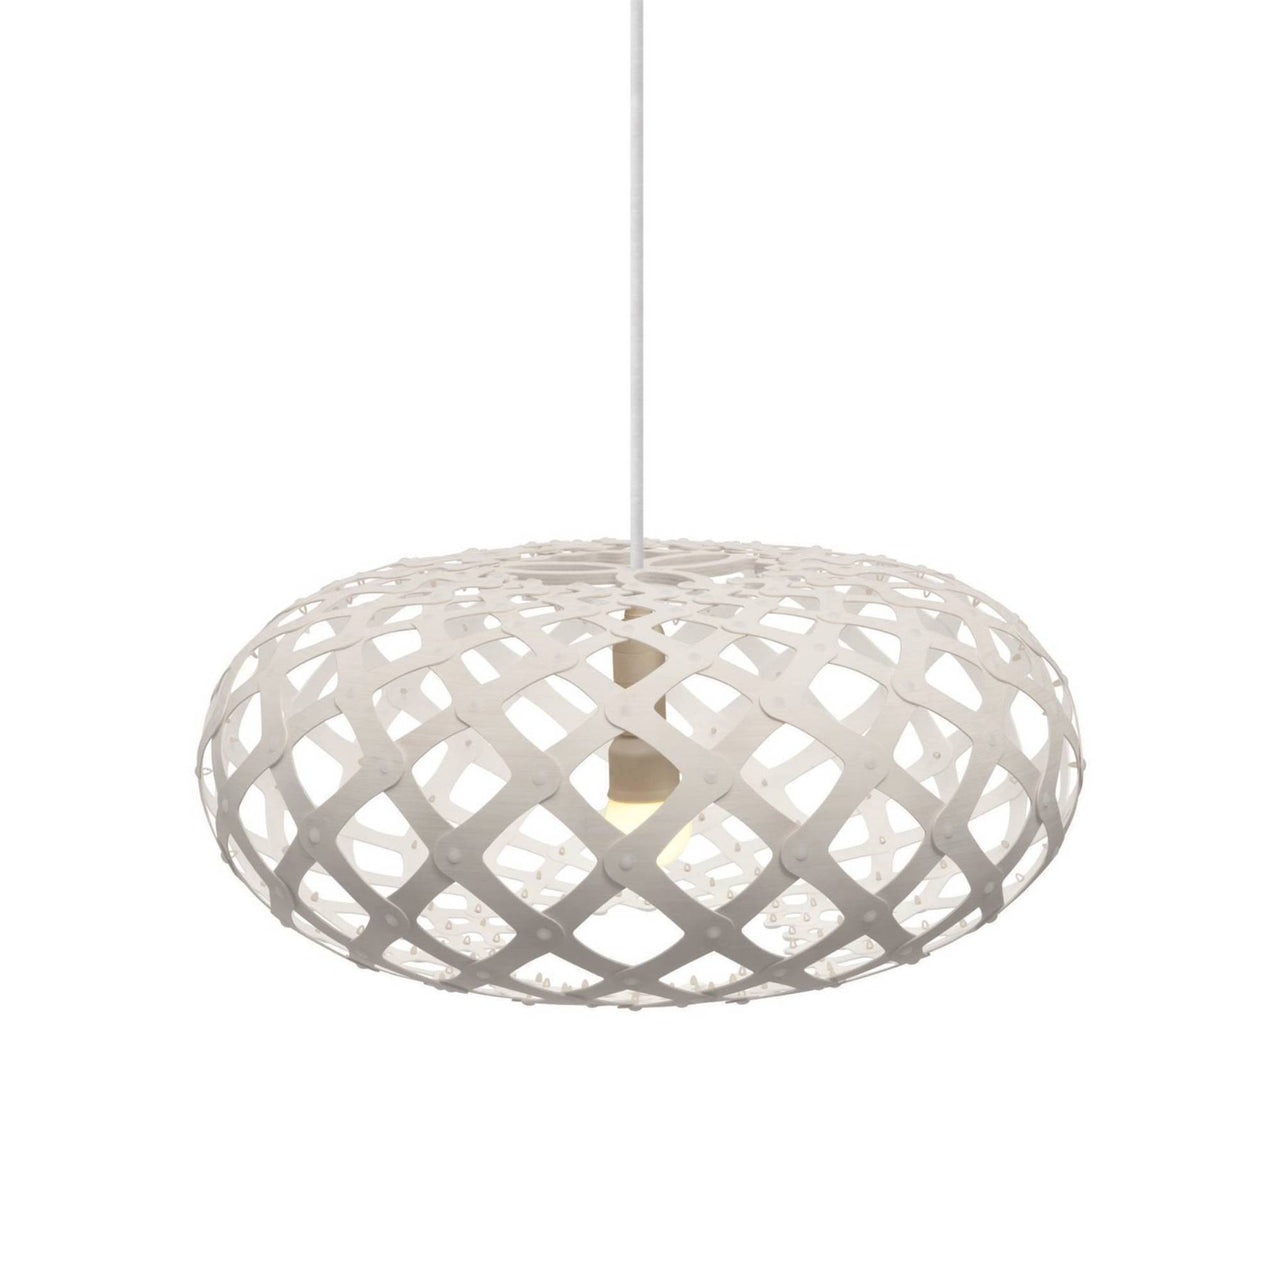 Kina Pendant Light: 440 + White Two Sides